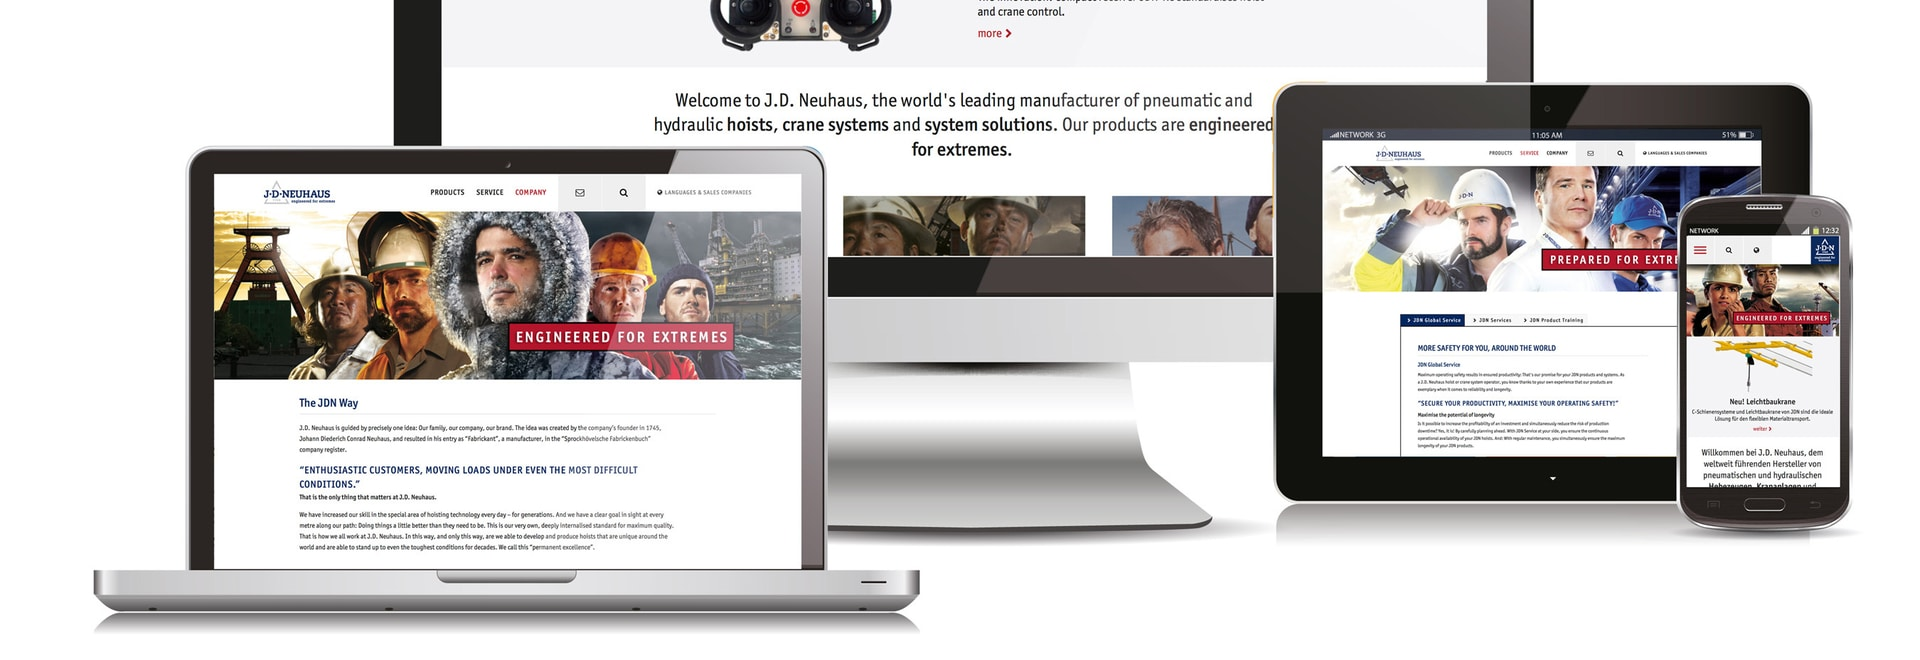 New J D Neuhaus Group Website